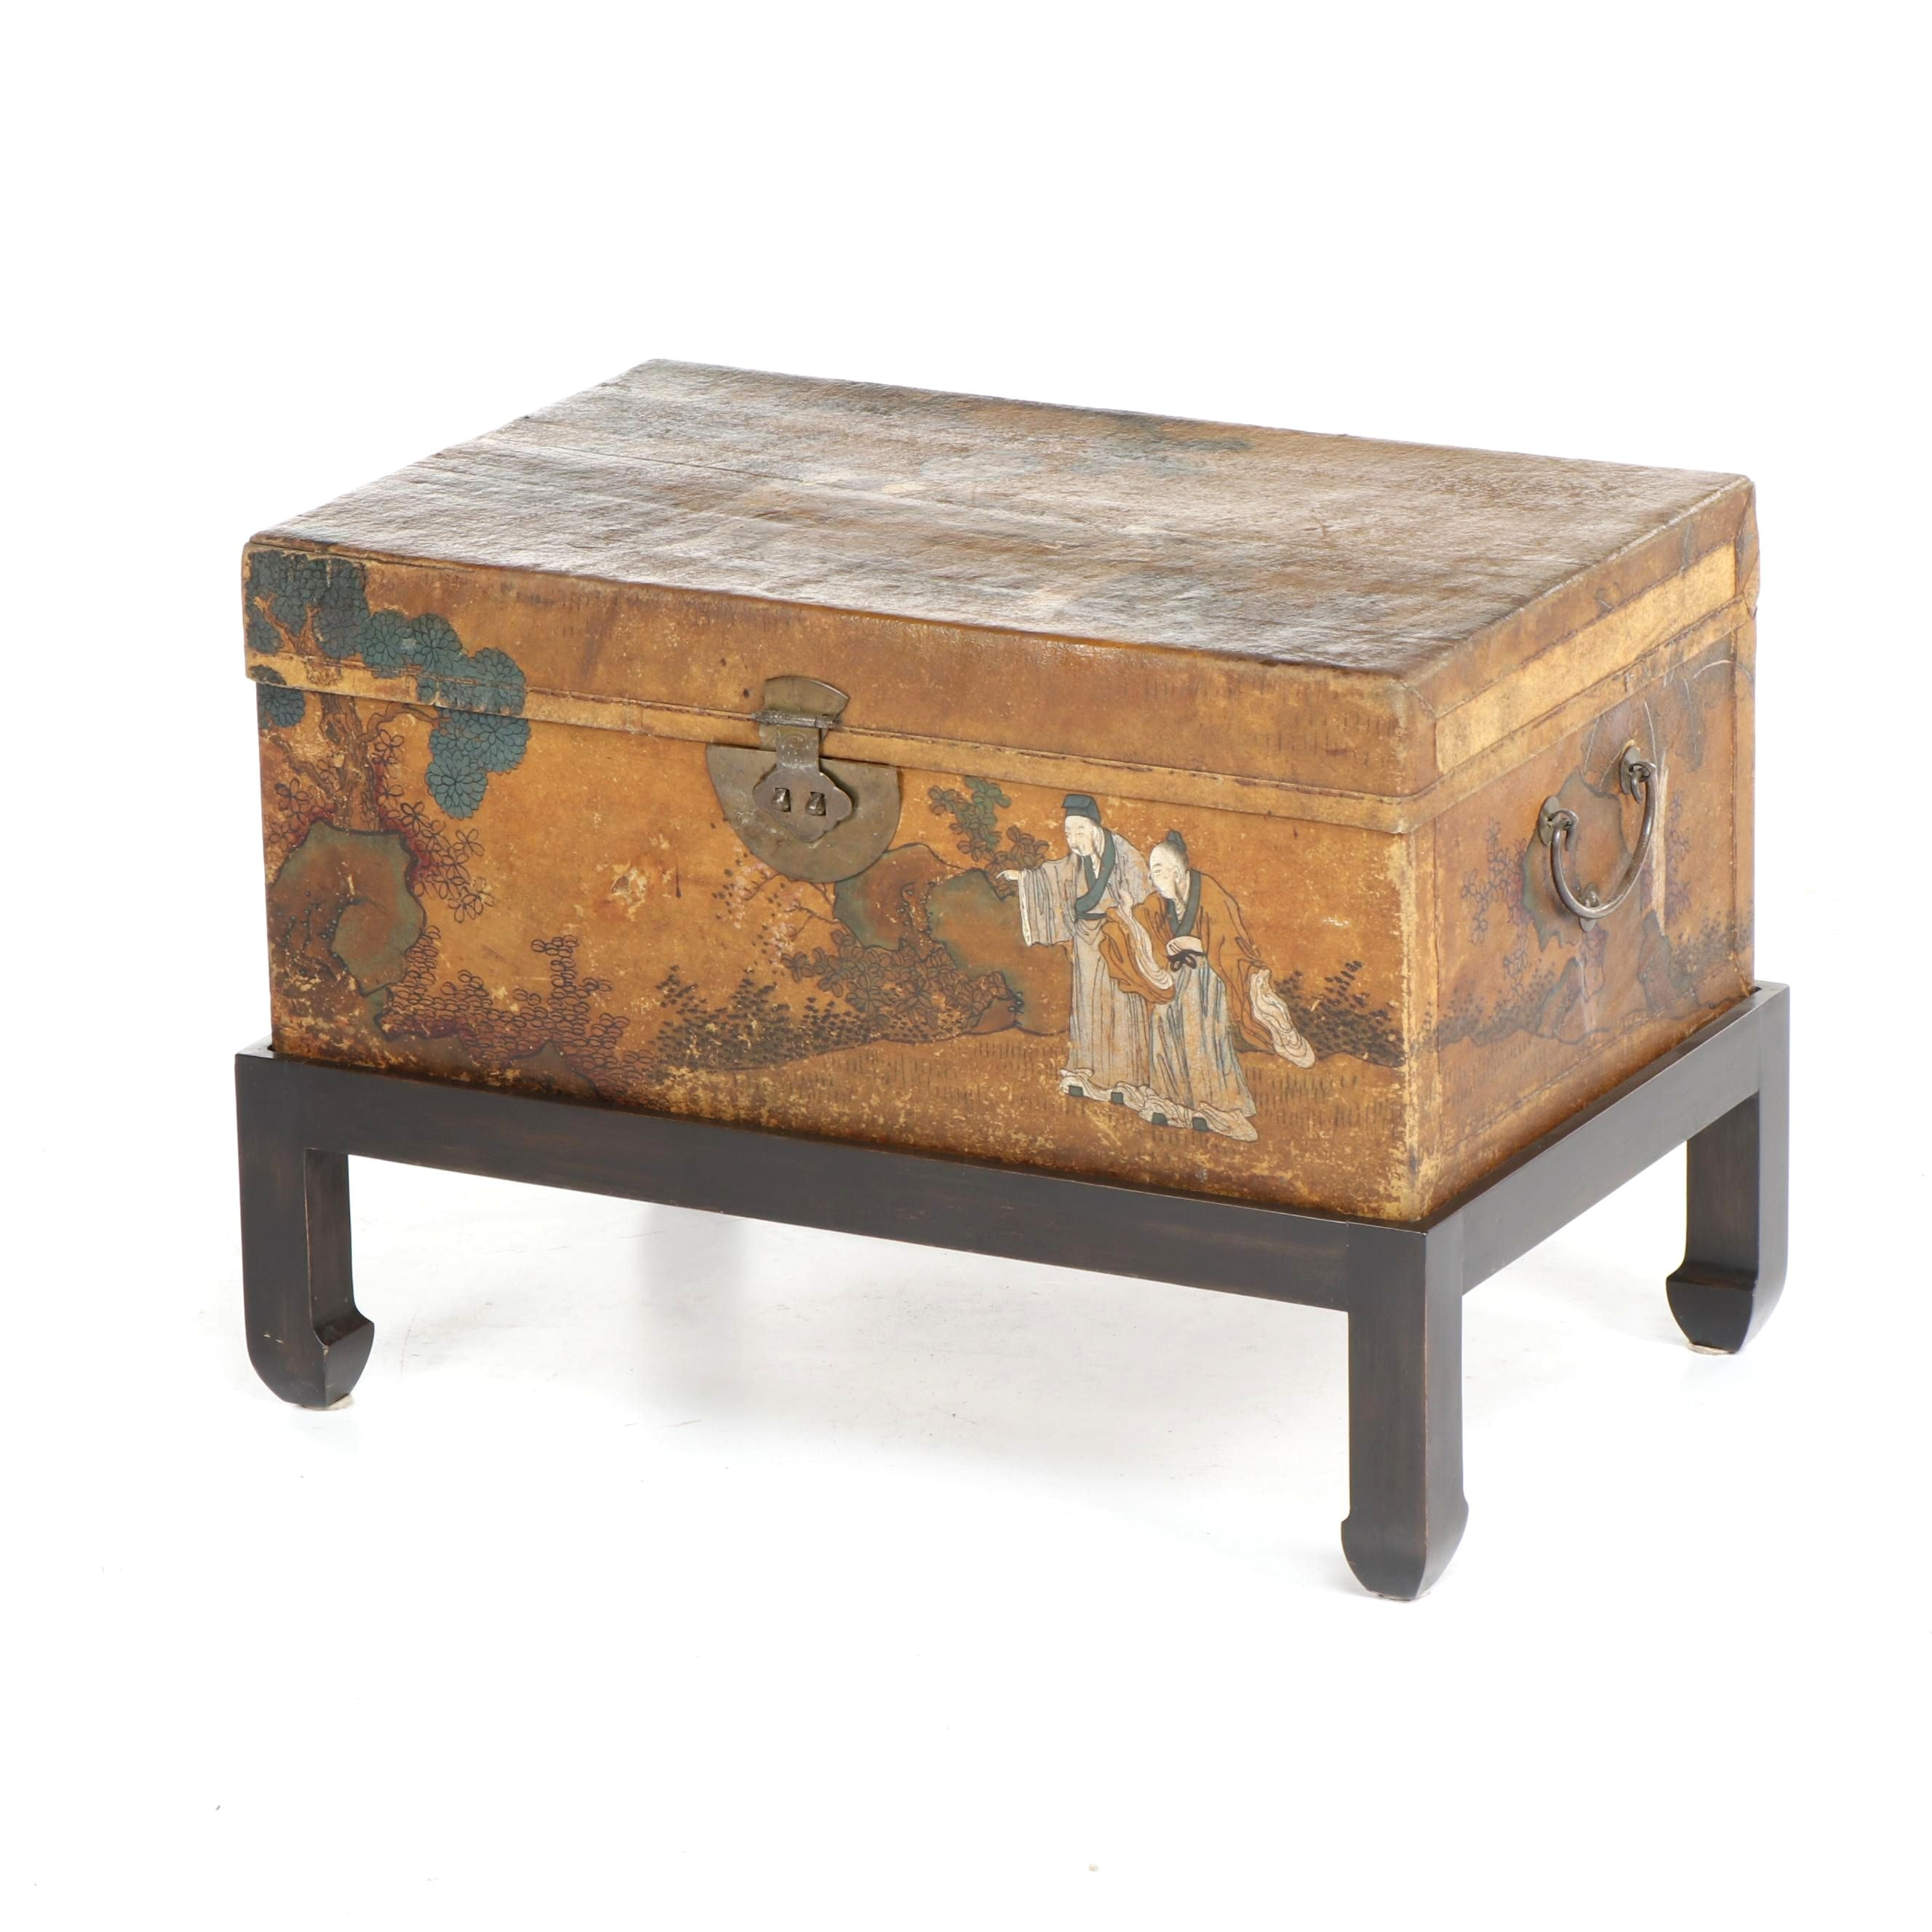 Chinese Painted Leather Covered Wood Trunk, Circa 1900